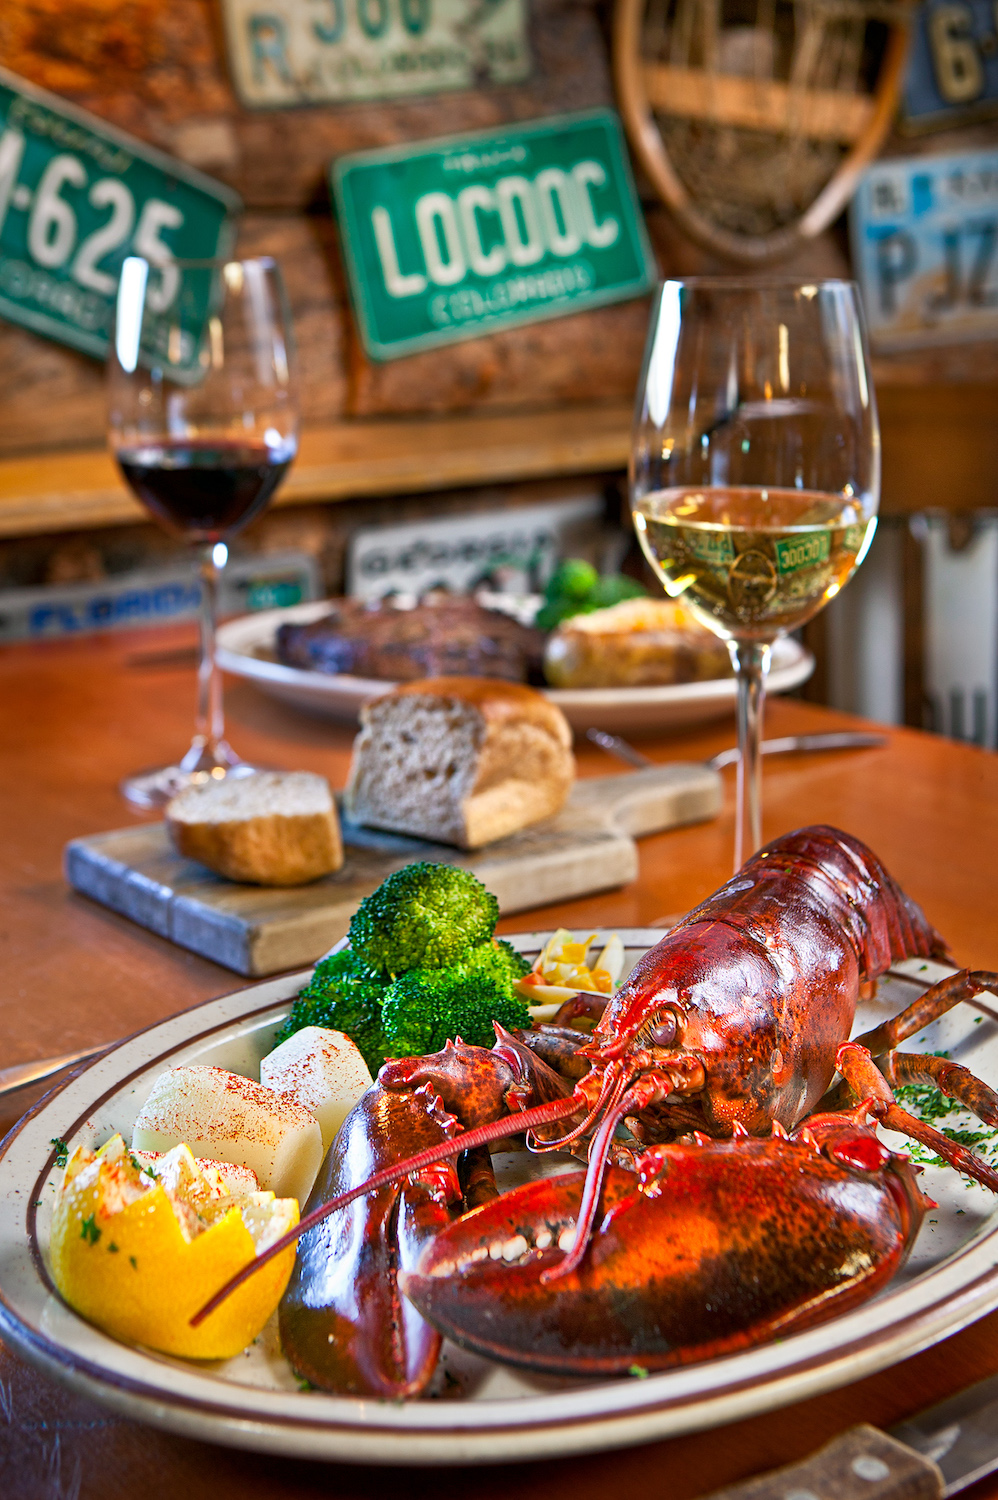 steak-lobster-white-red-wine.jpg